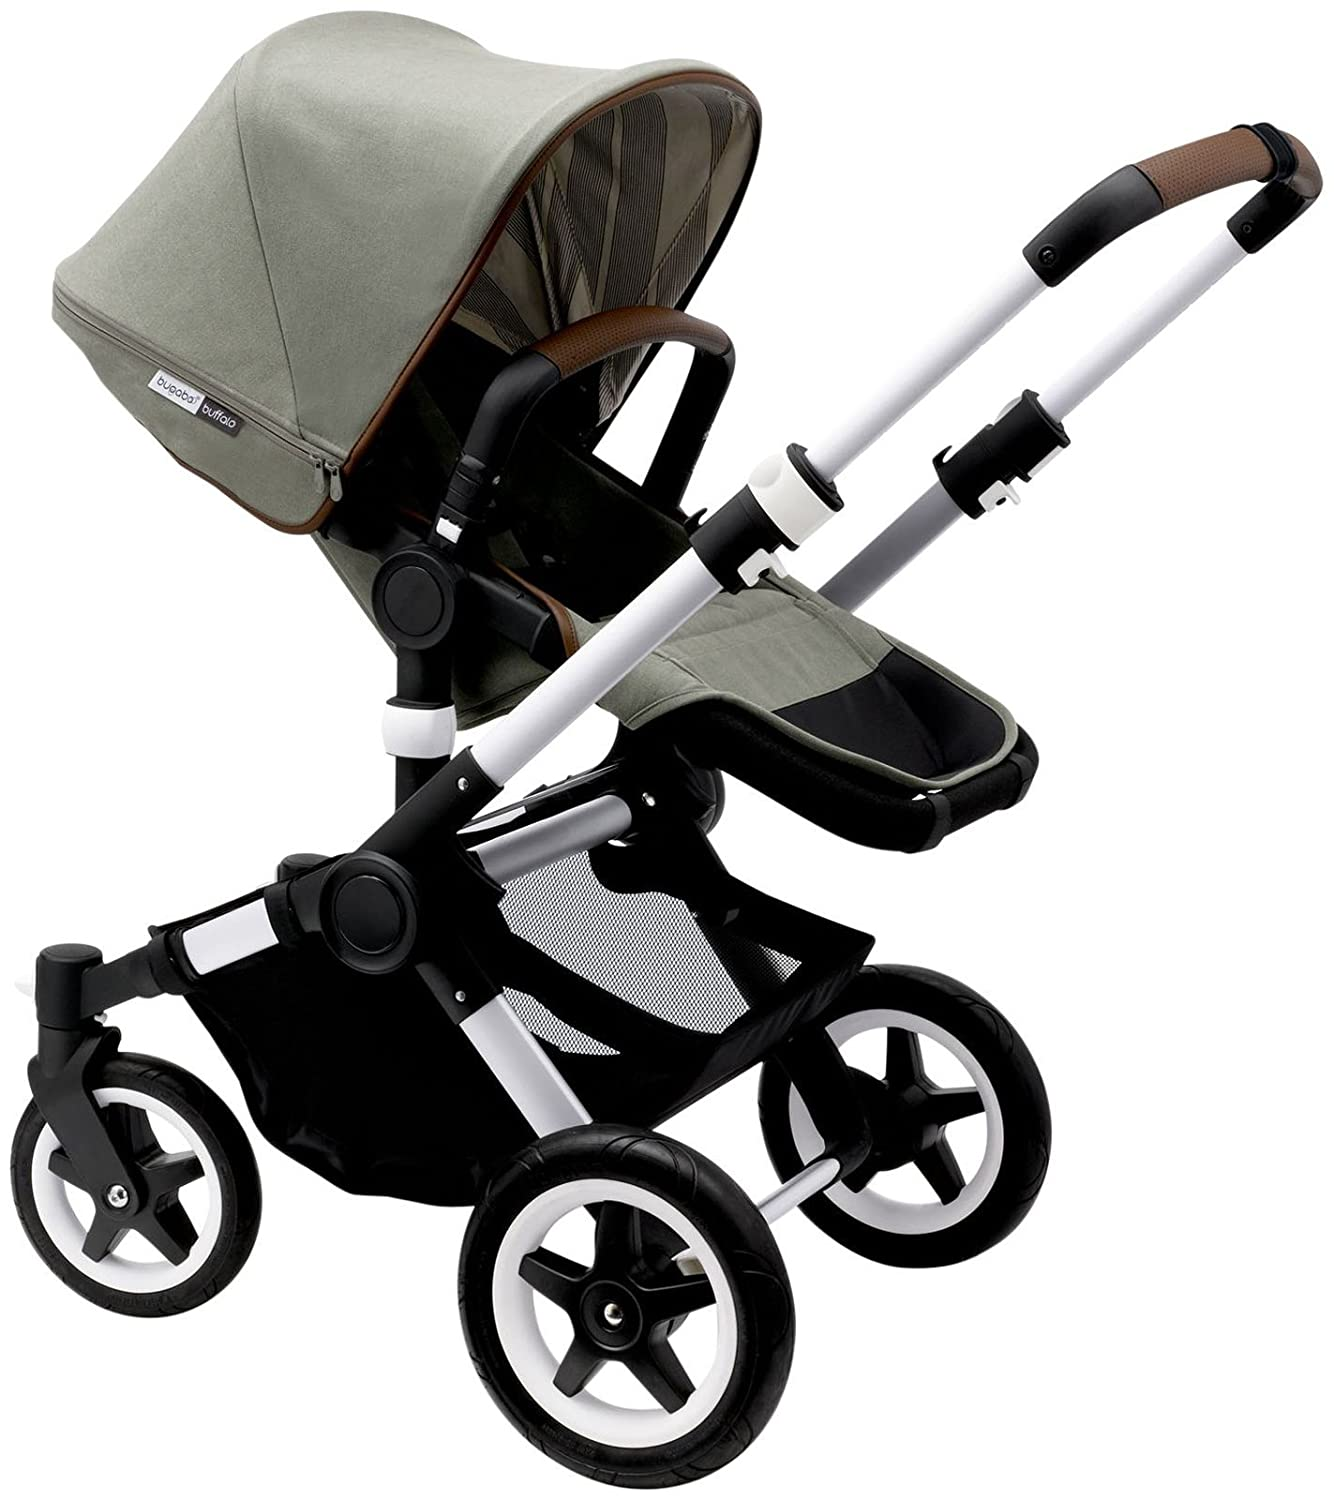 Amazon.com: Bálsamo para Bugaboo Buffalo Escape Stroller ...